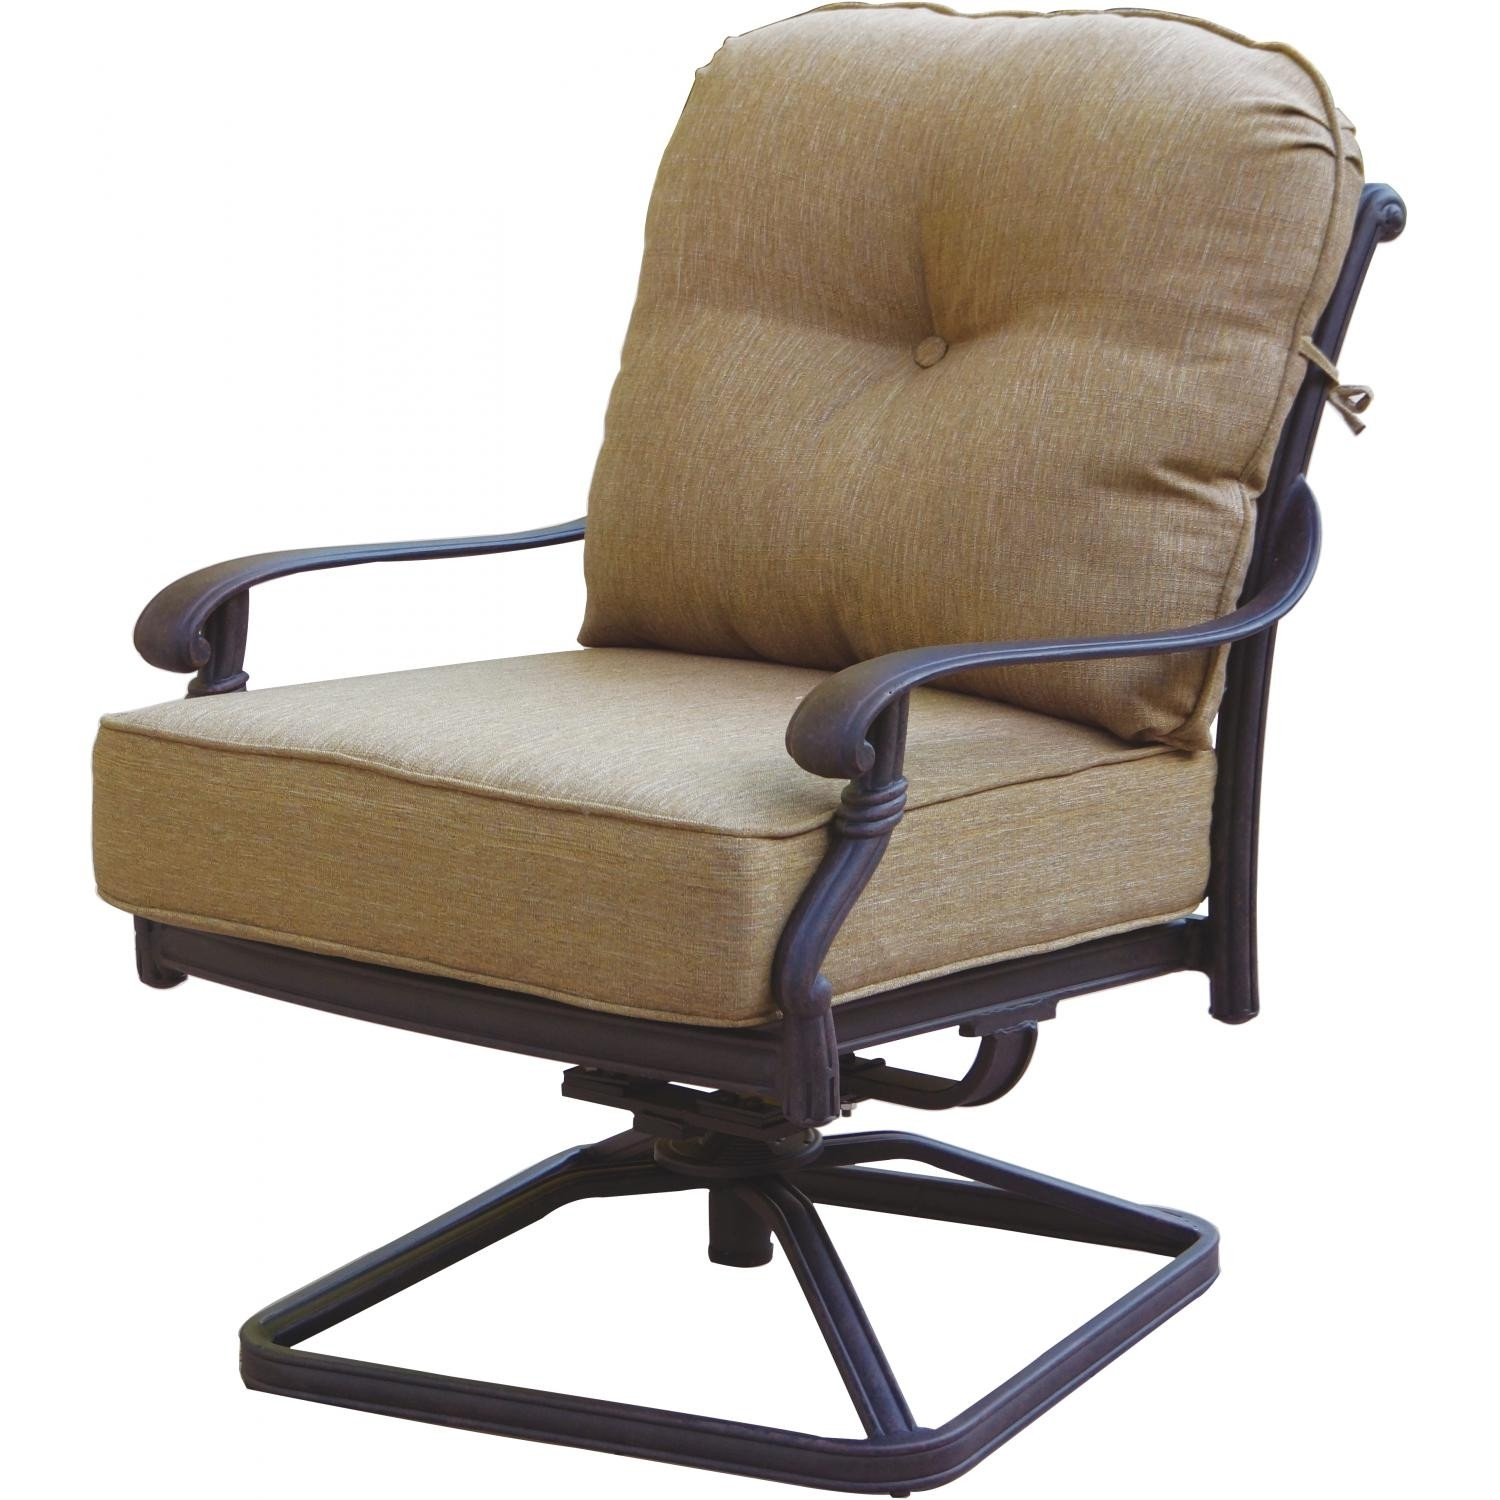 Inspiration about Rocking Lawn Chair Intended For Rocking Chairs For Patio (#15 of 15)